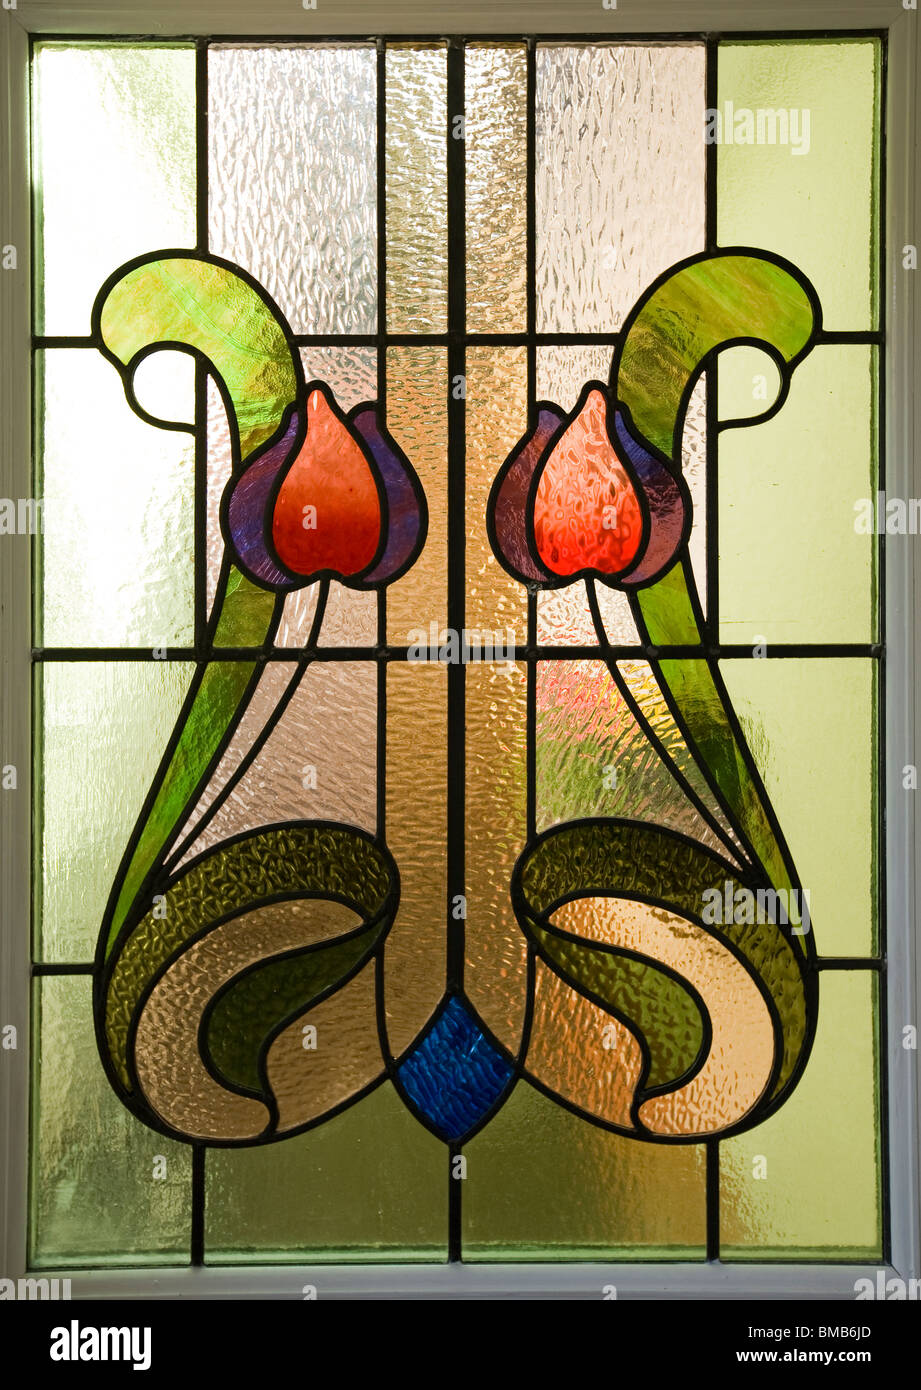 Houses Edwardian arts and crafts house, colourful art nouveau stained glass window panel - Stock Image